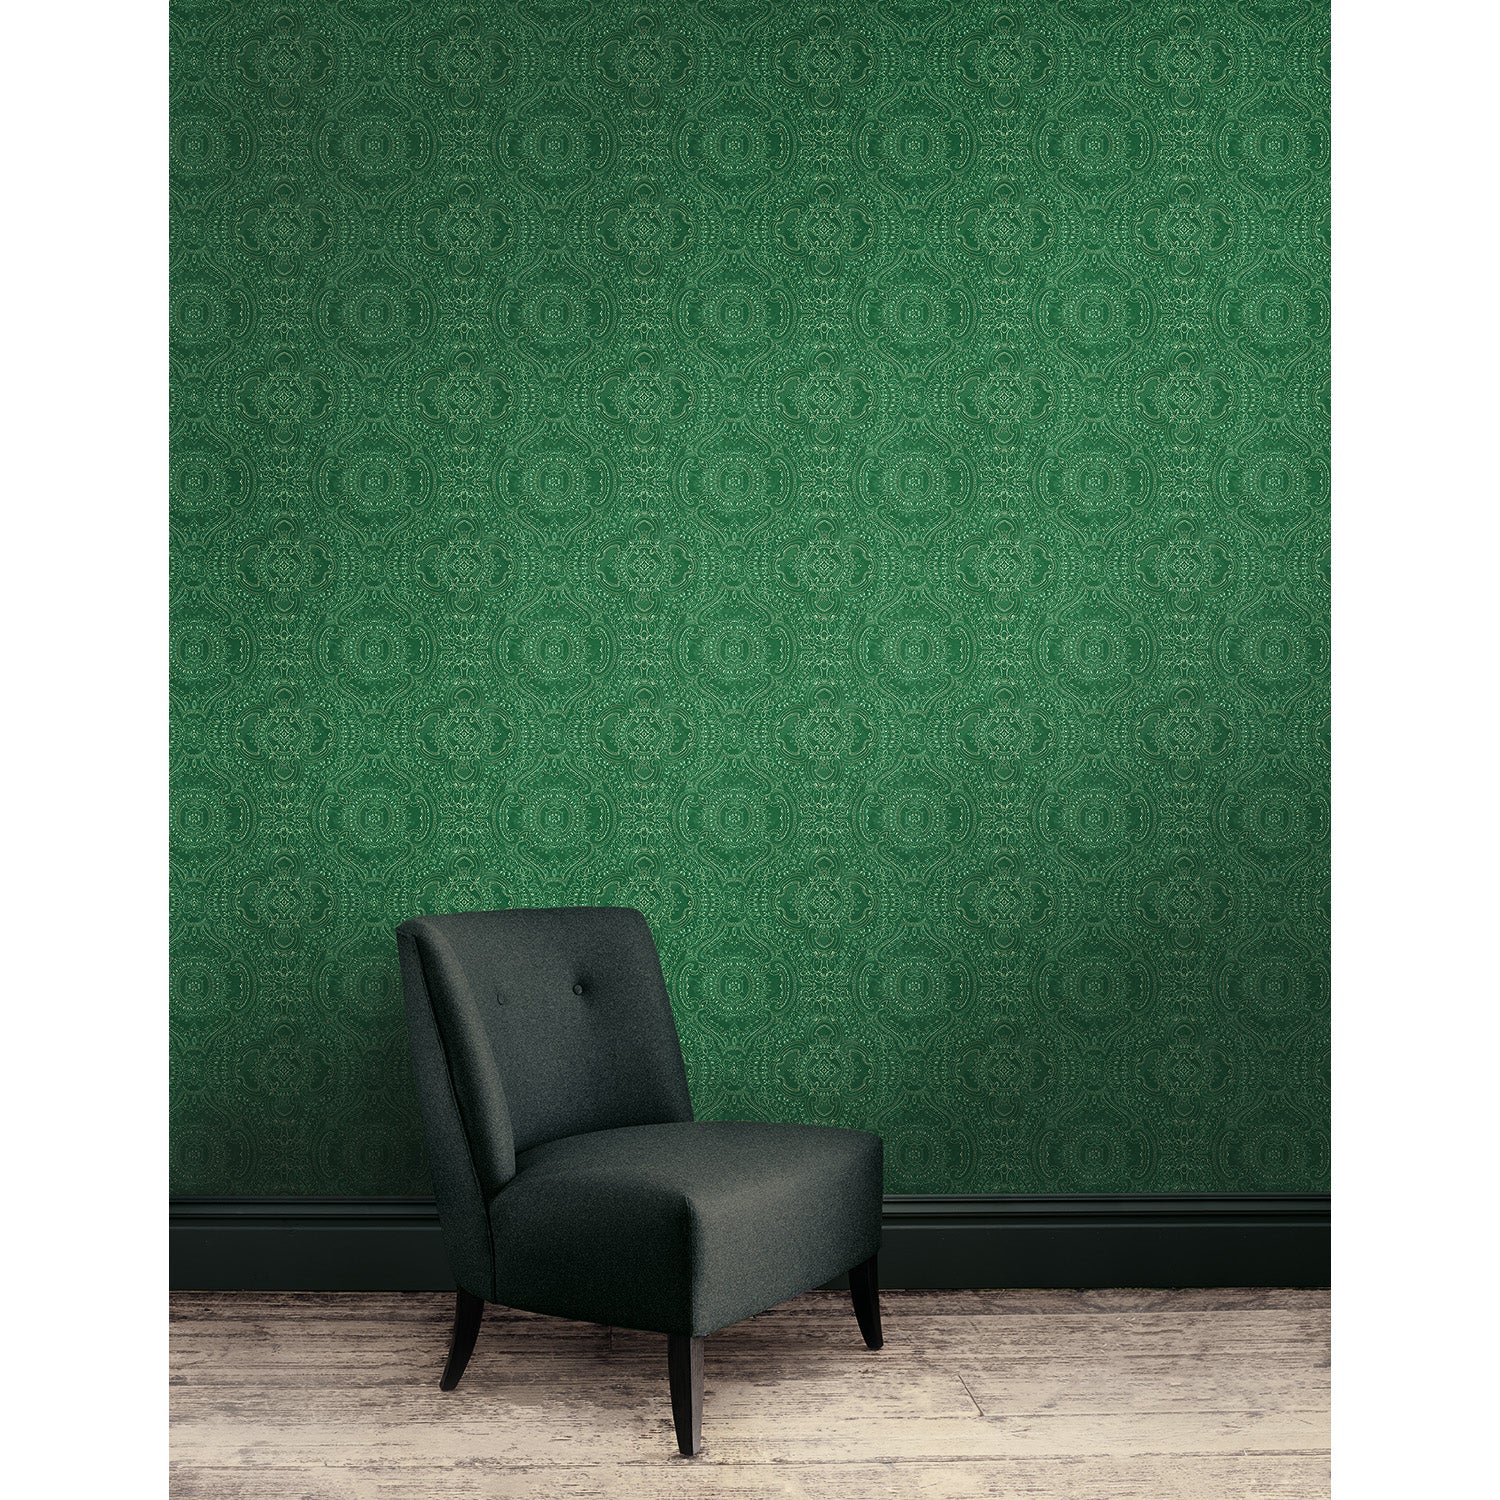 Wallpaper for walls in emerald green and white with an intricate jewel like design